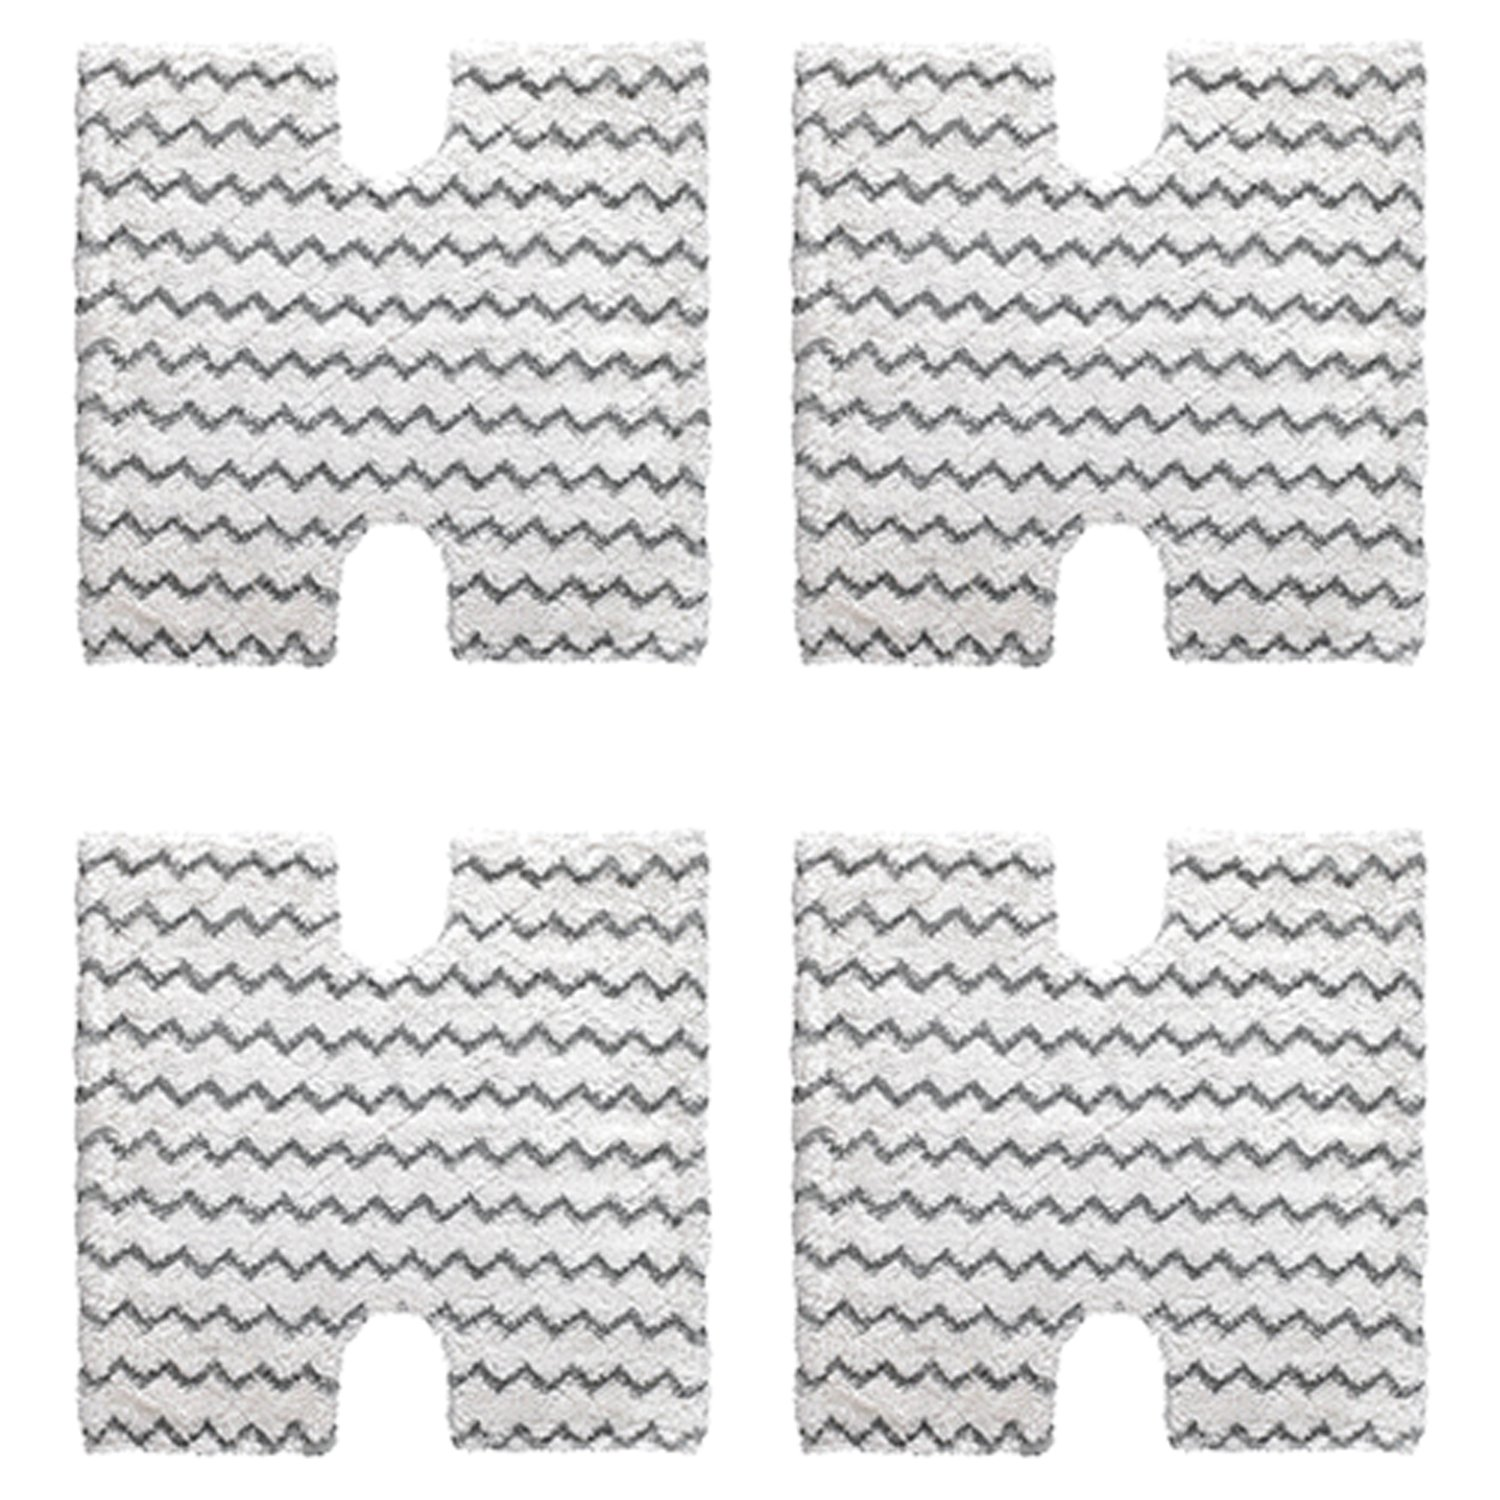 Amyehouse 4-Pack Shark Touch Free Dirt Grip Washable Microfiber Pad Replacememt for Shark Lift-Away & Genius Steam Mop 3973 S3973D S5002 S5003 S6001 S6002 S6003 Part # XTP184 & P184WQ